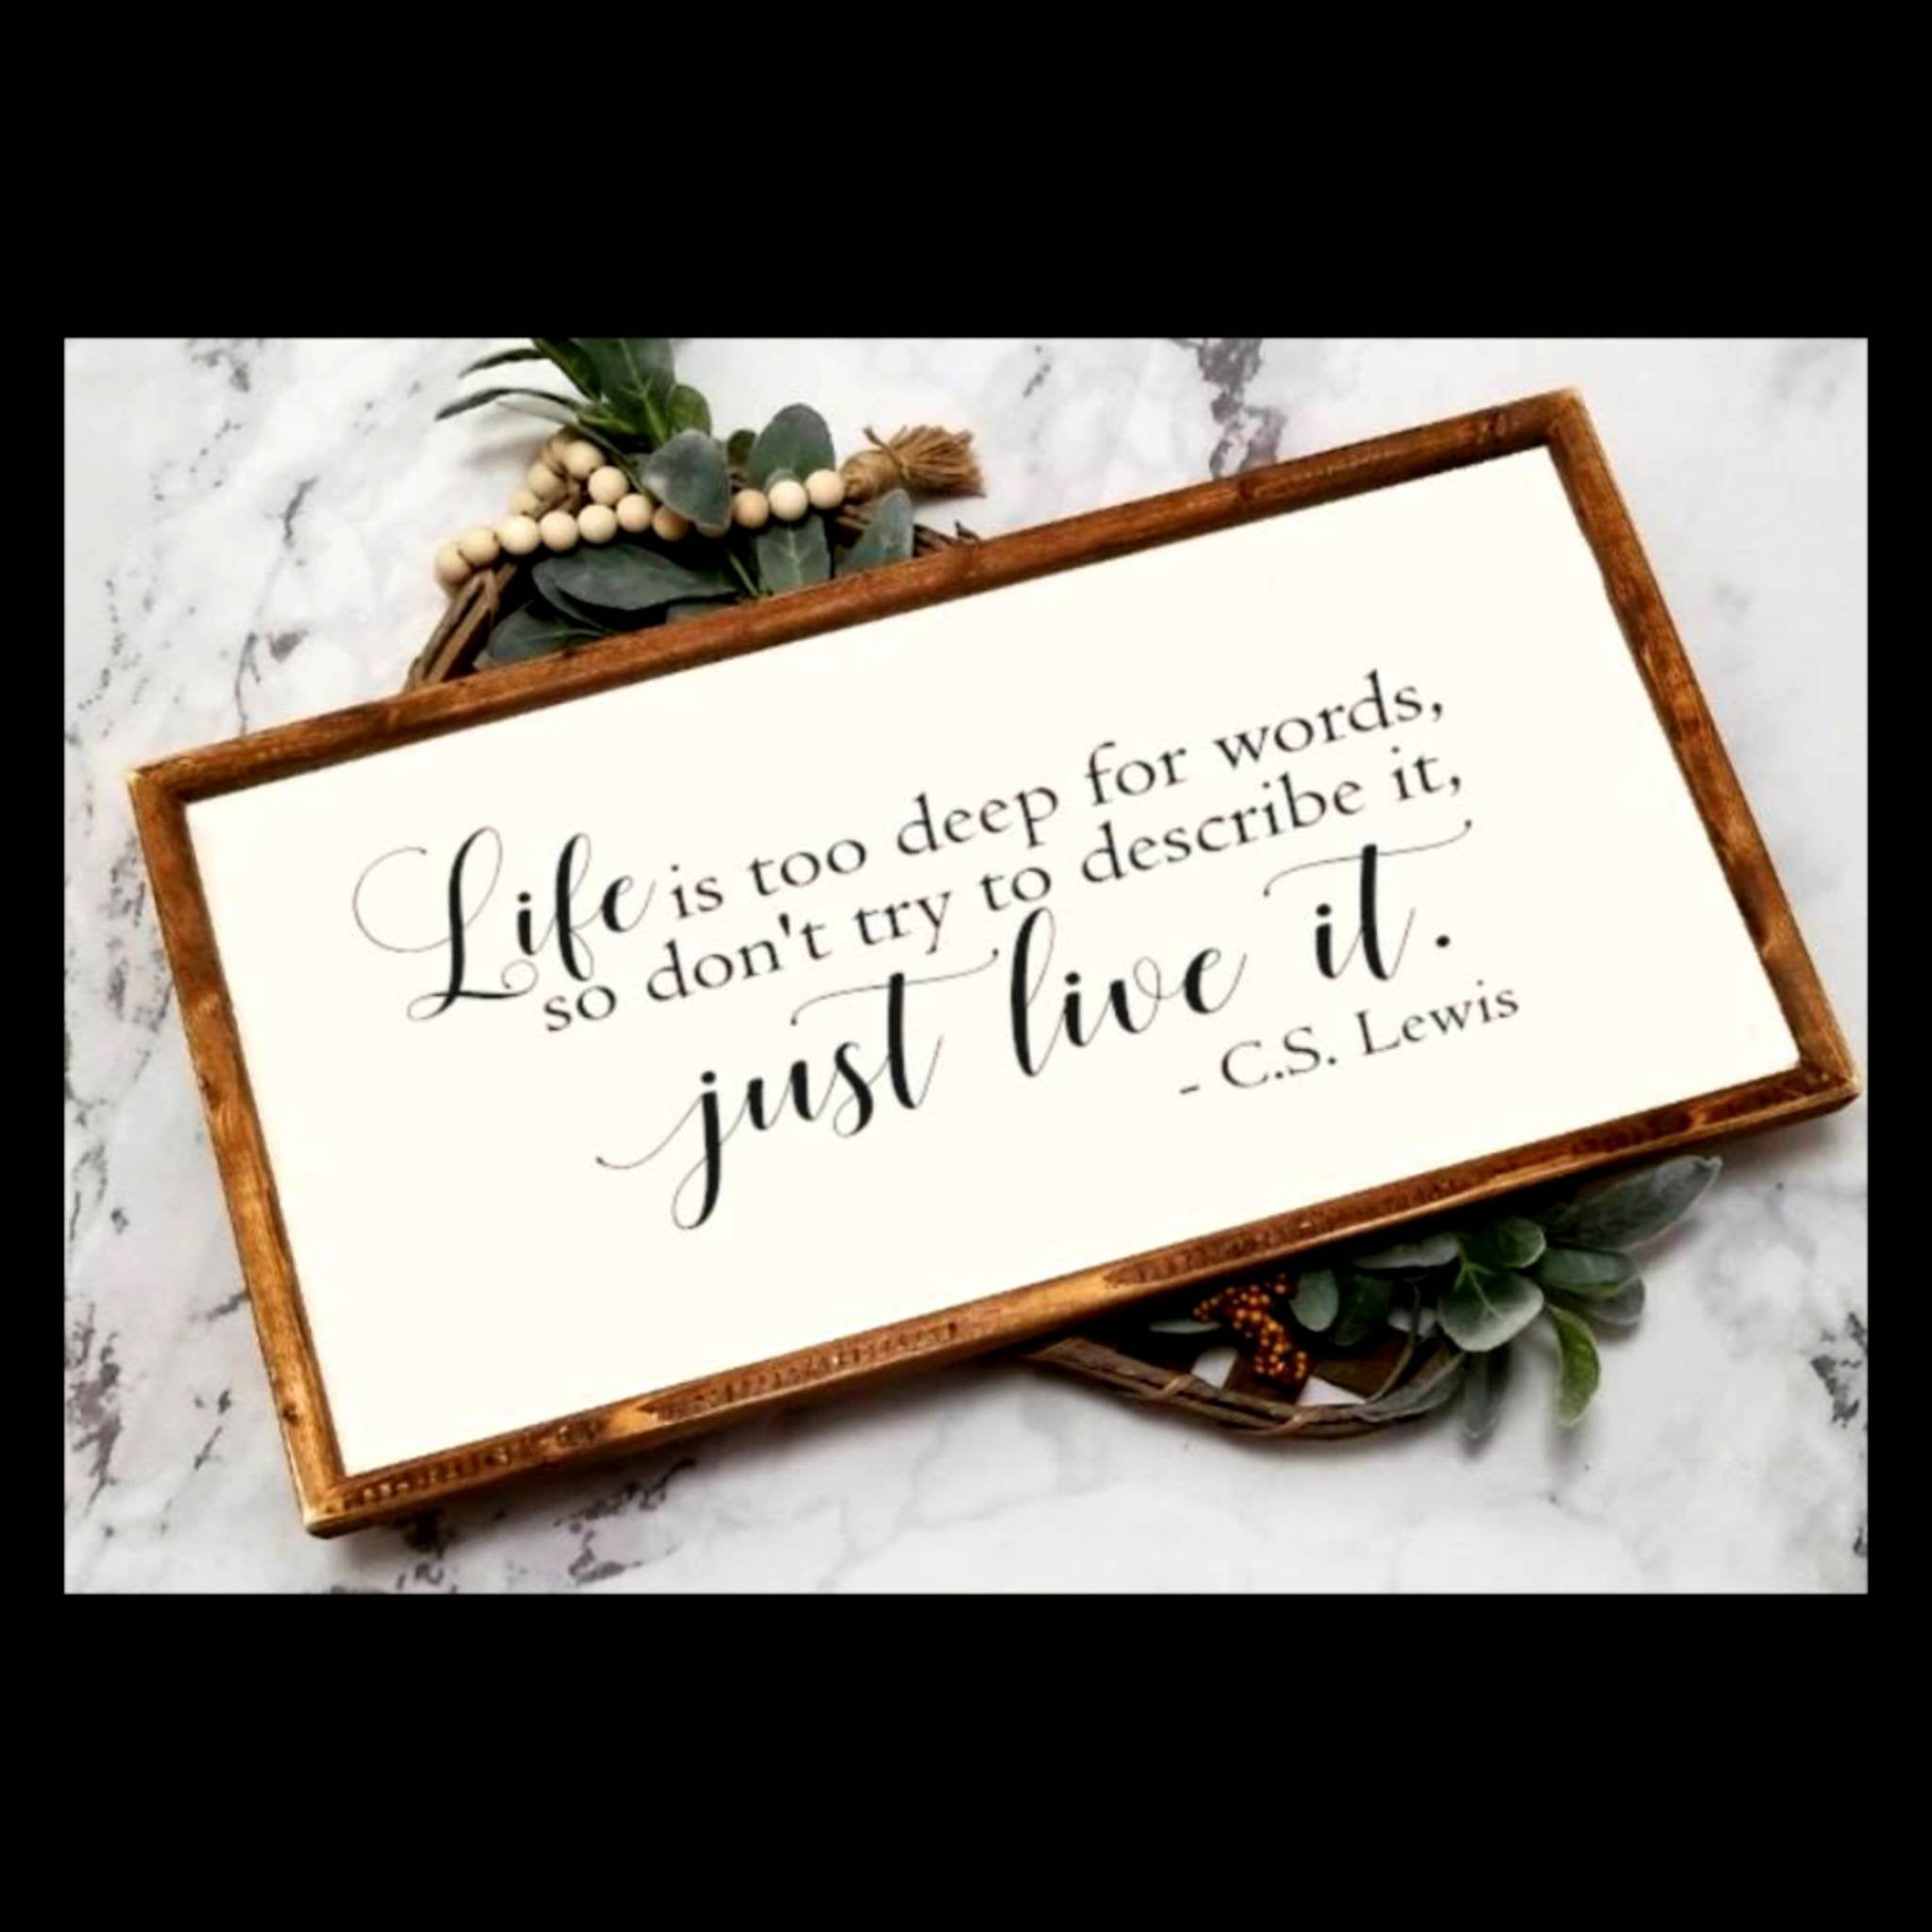 Life is too deep for words sign | C.S. Lewis quote sign, C S Lewis sign, Farmhouse decor, living room decor sign,  inspirational quote sign